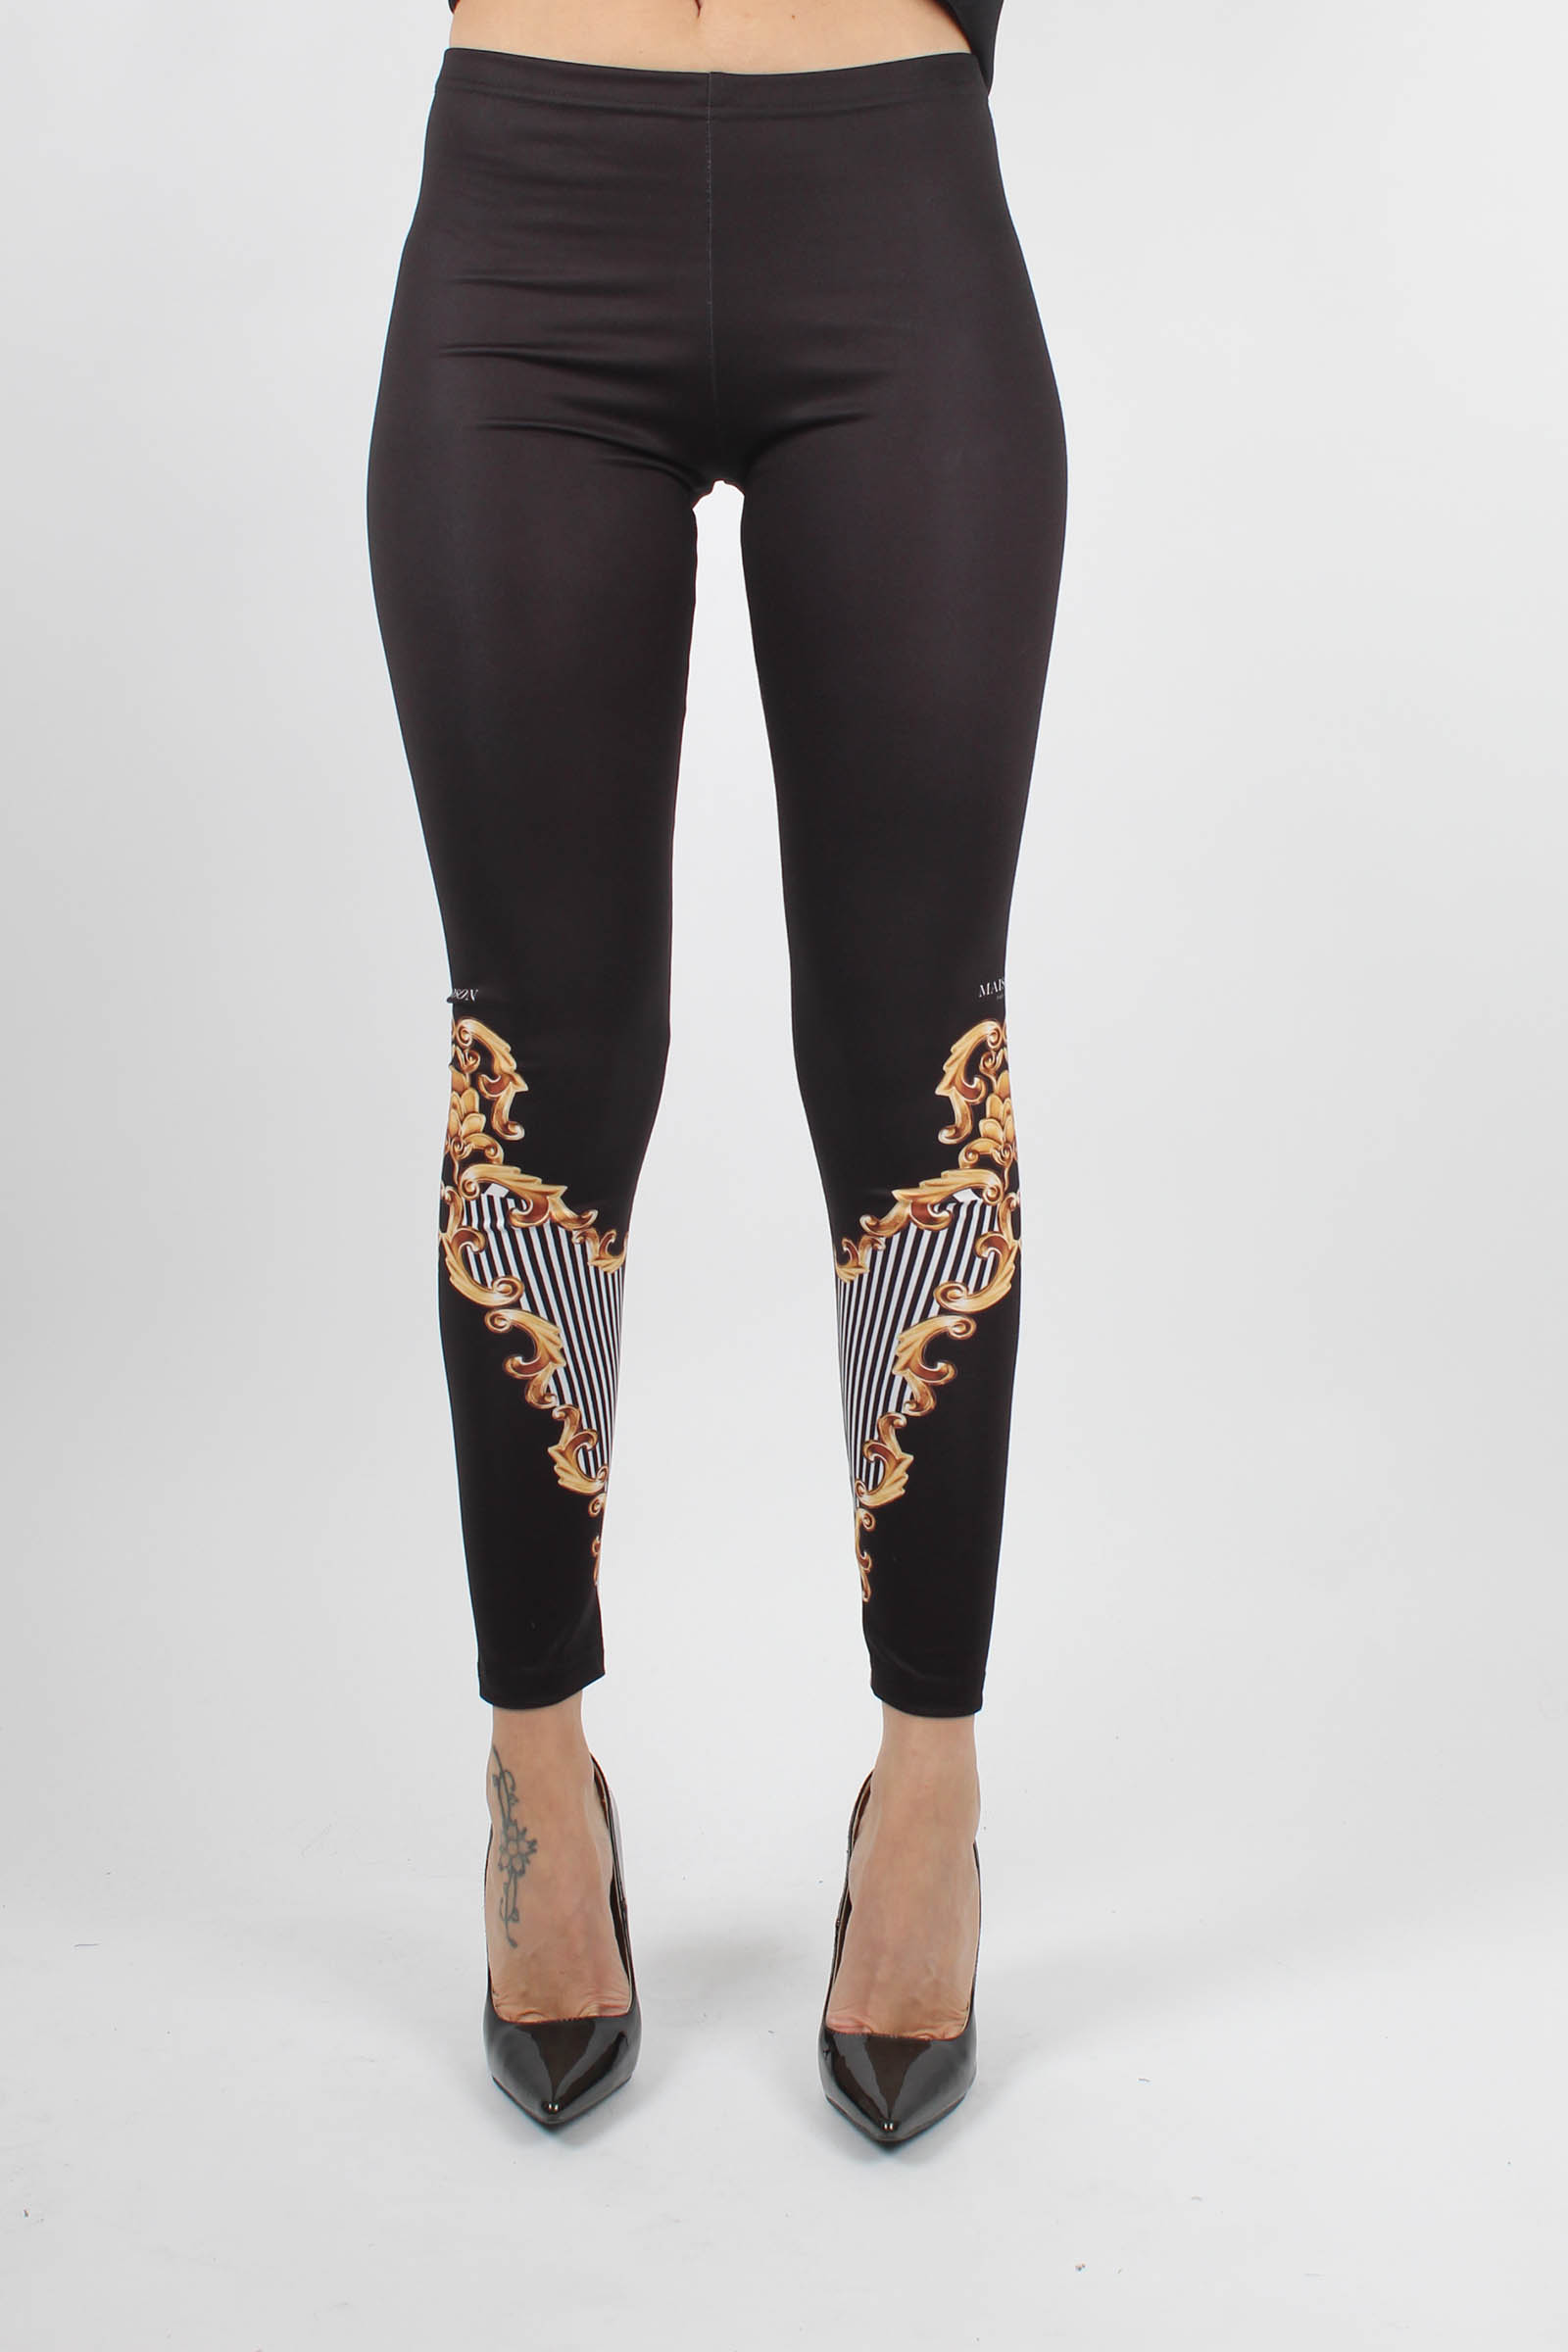 MAISON 9 PARIS | Leggins | M9FP6291